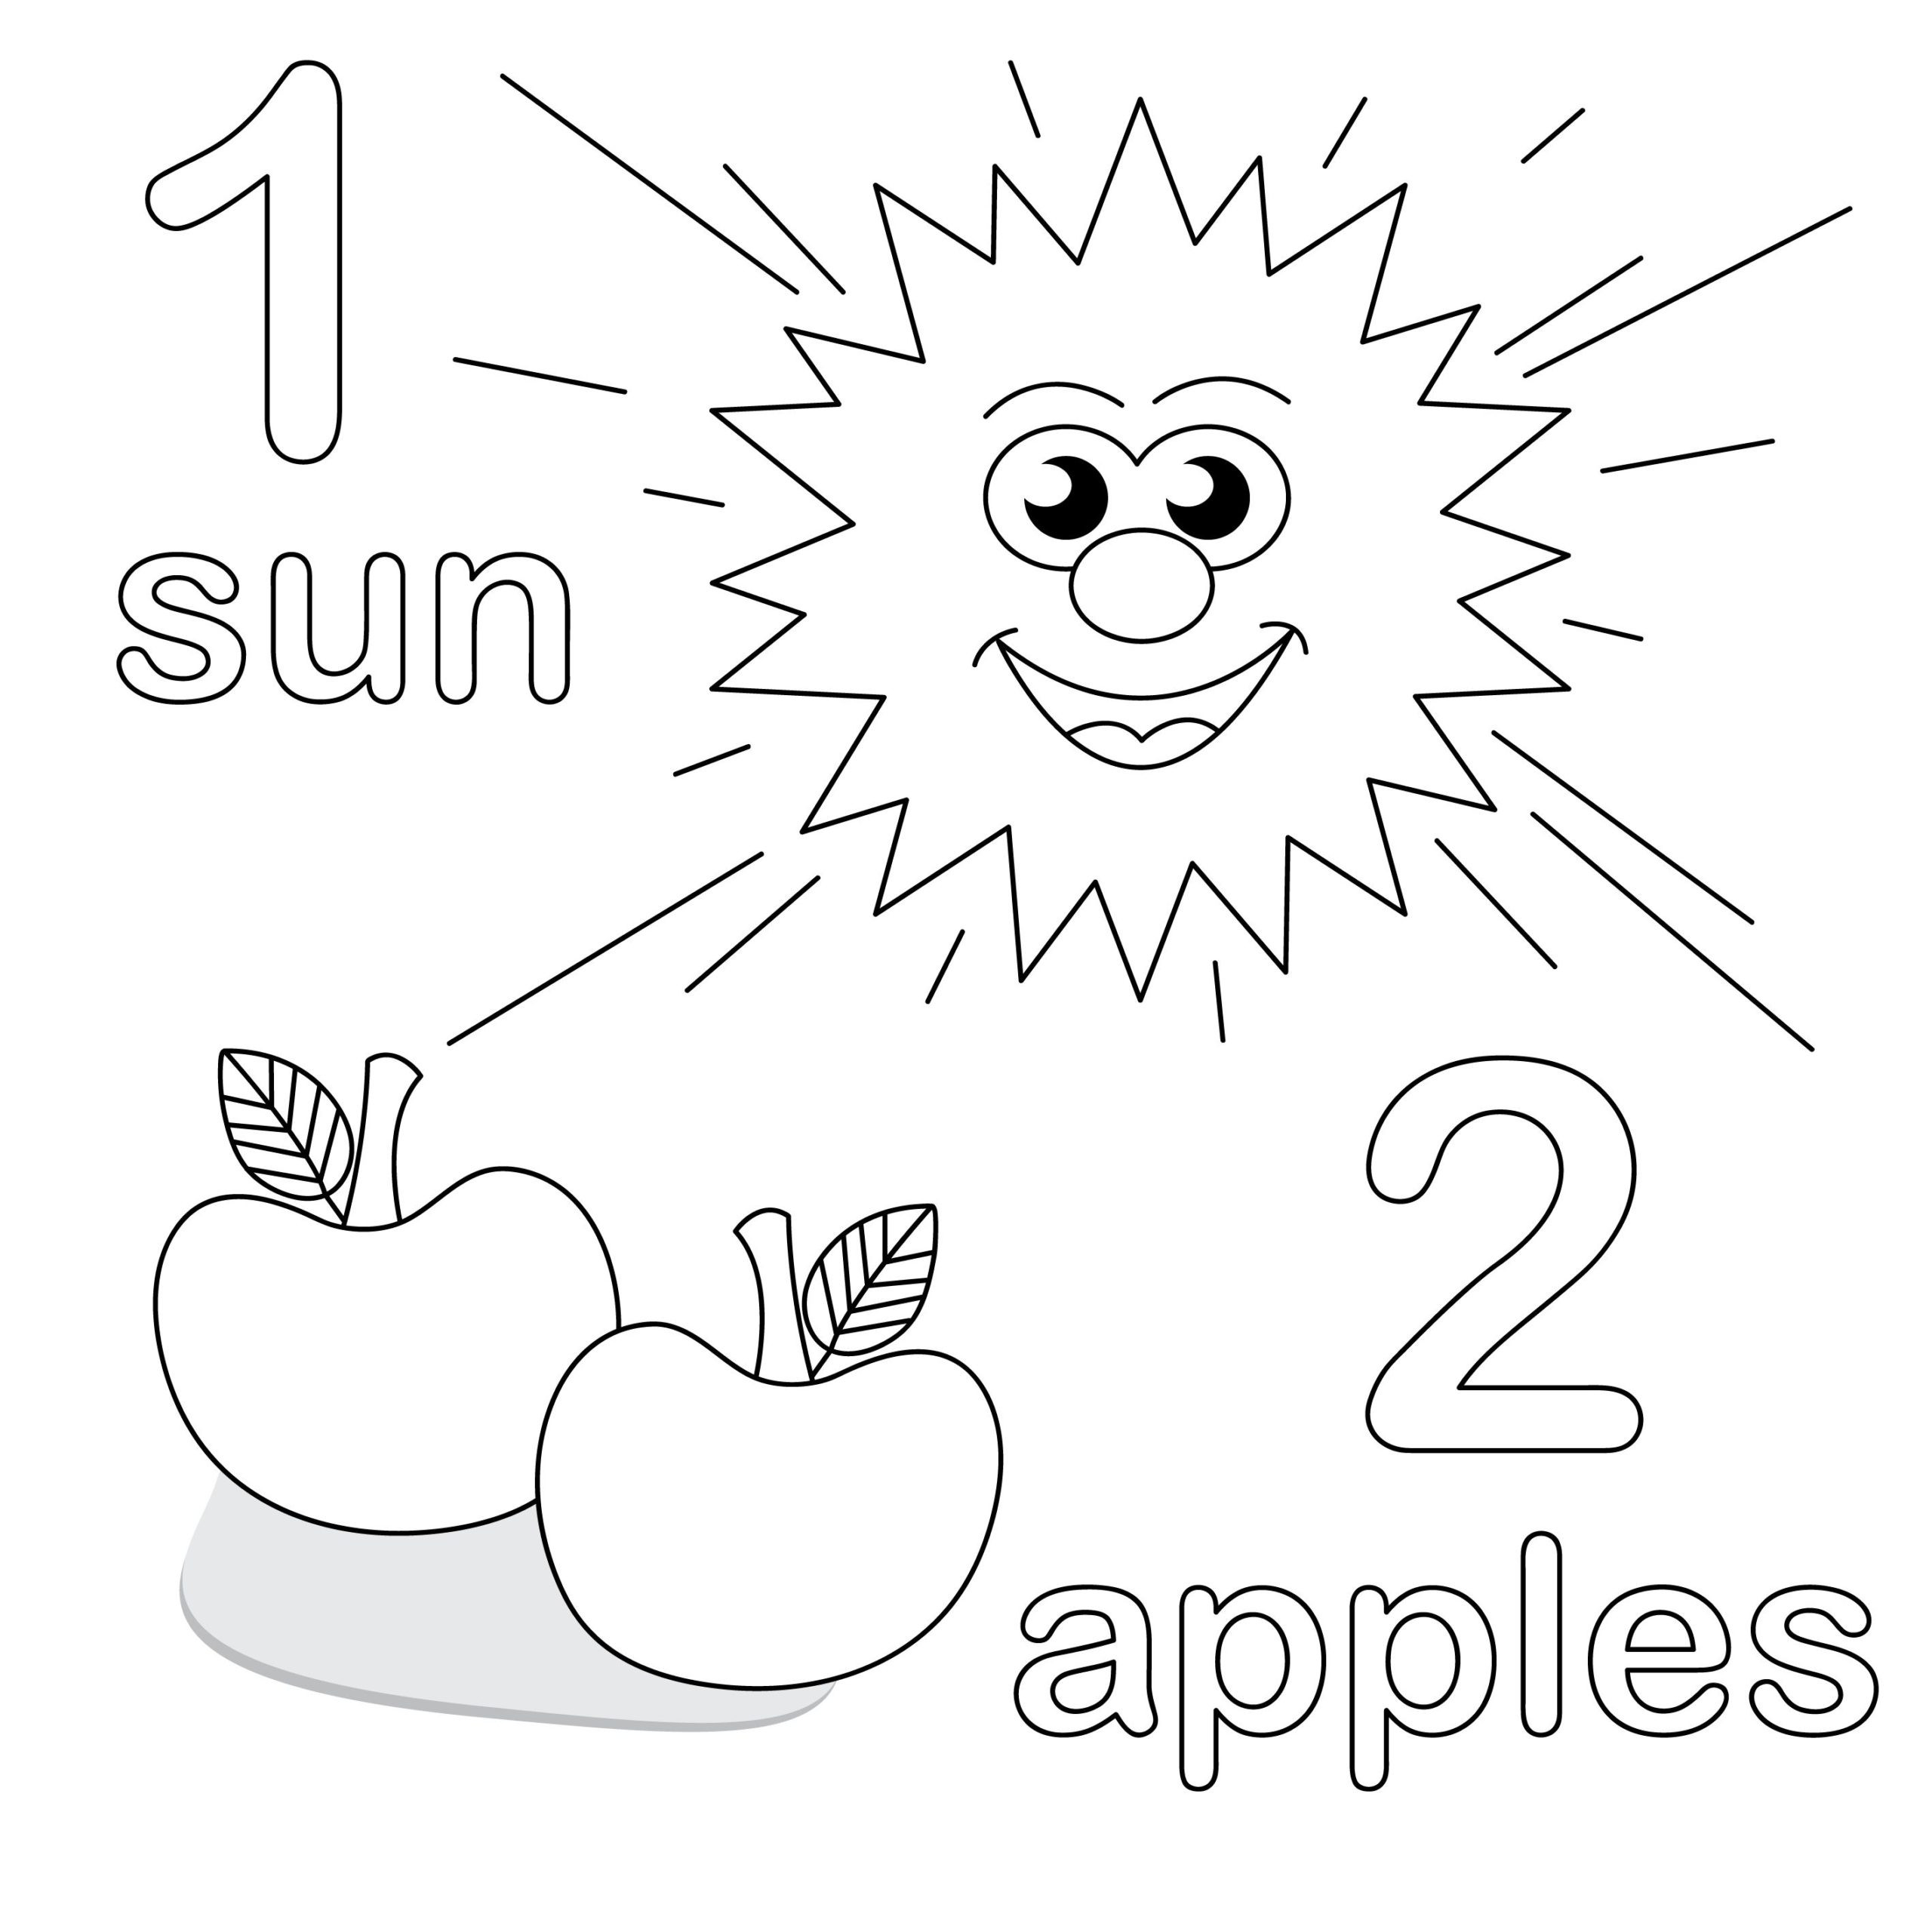 ordinal numbers coloring worksheet these worksheets will help your kids learn ordinal numbers worksheet coloring ordinal numbers